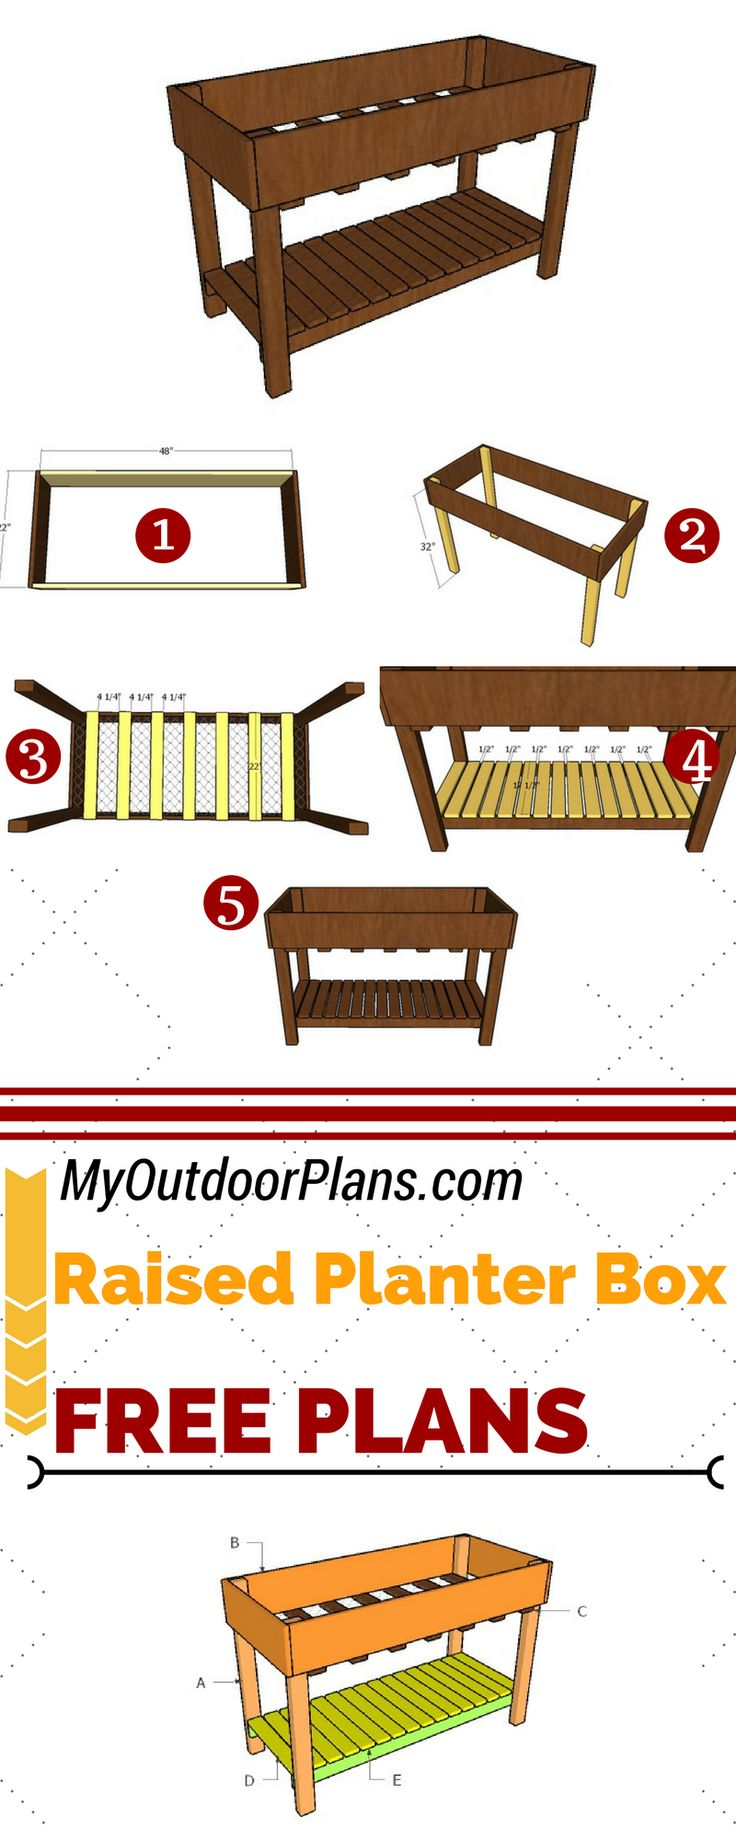 Free plans for building an counter height raised garden bed. This planter box is easy to build and it will add value to your property. Full plans at: MyOutdoorPlans.com #diy #planter